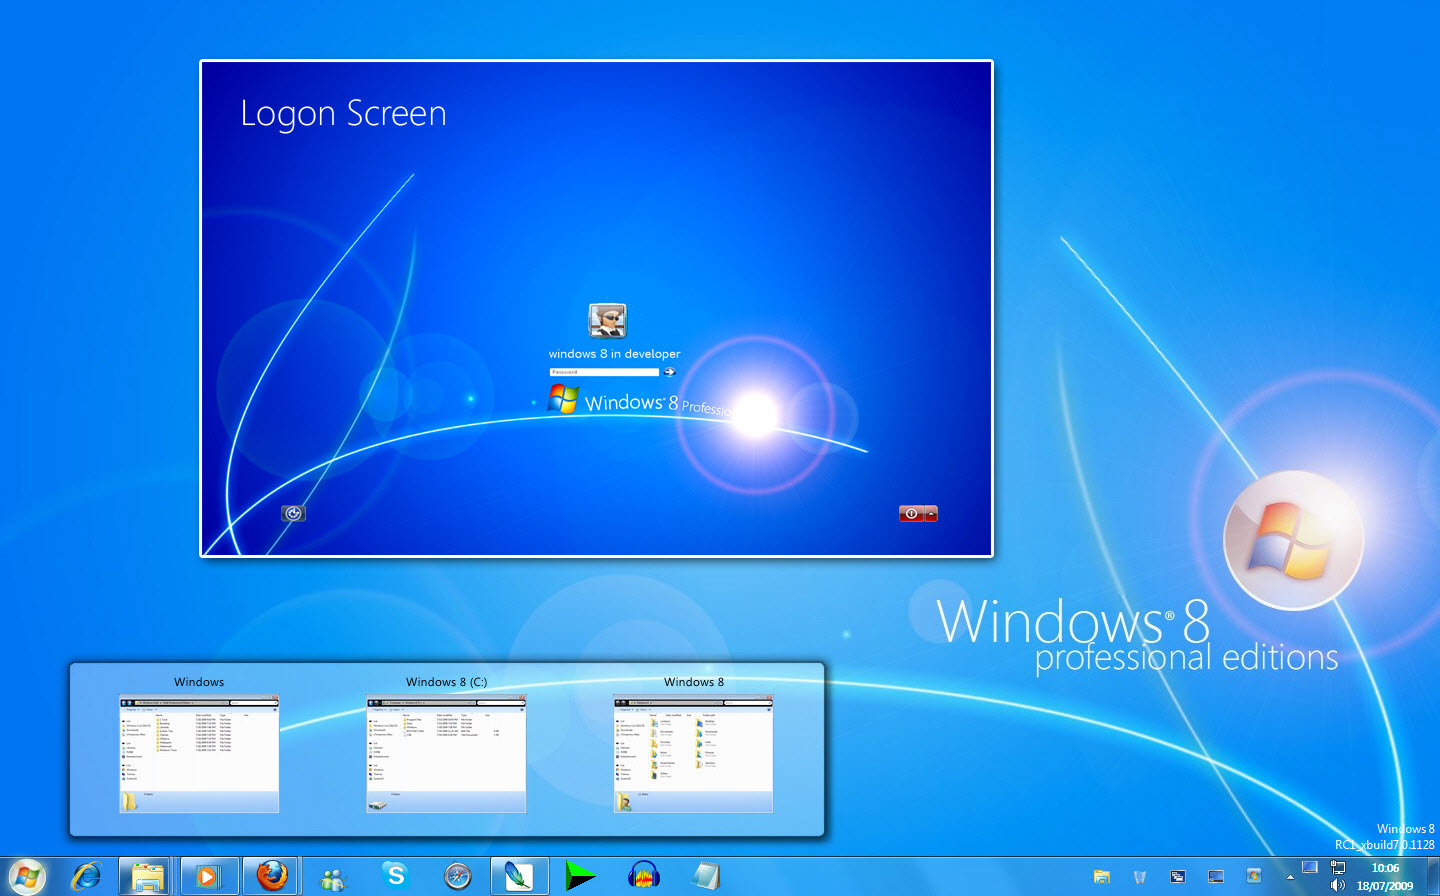 Windows 8 Transformation pack for Windows 7 @ 10+ Windows Transformation Packs To Enhance Desktop Experience